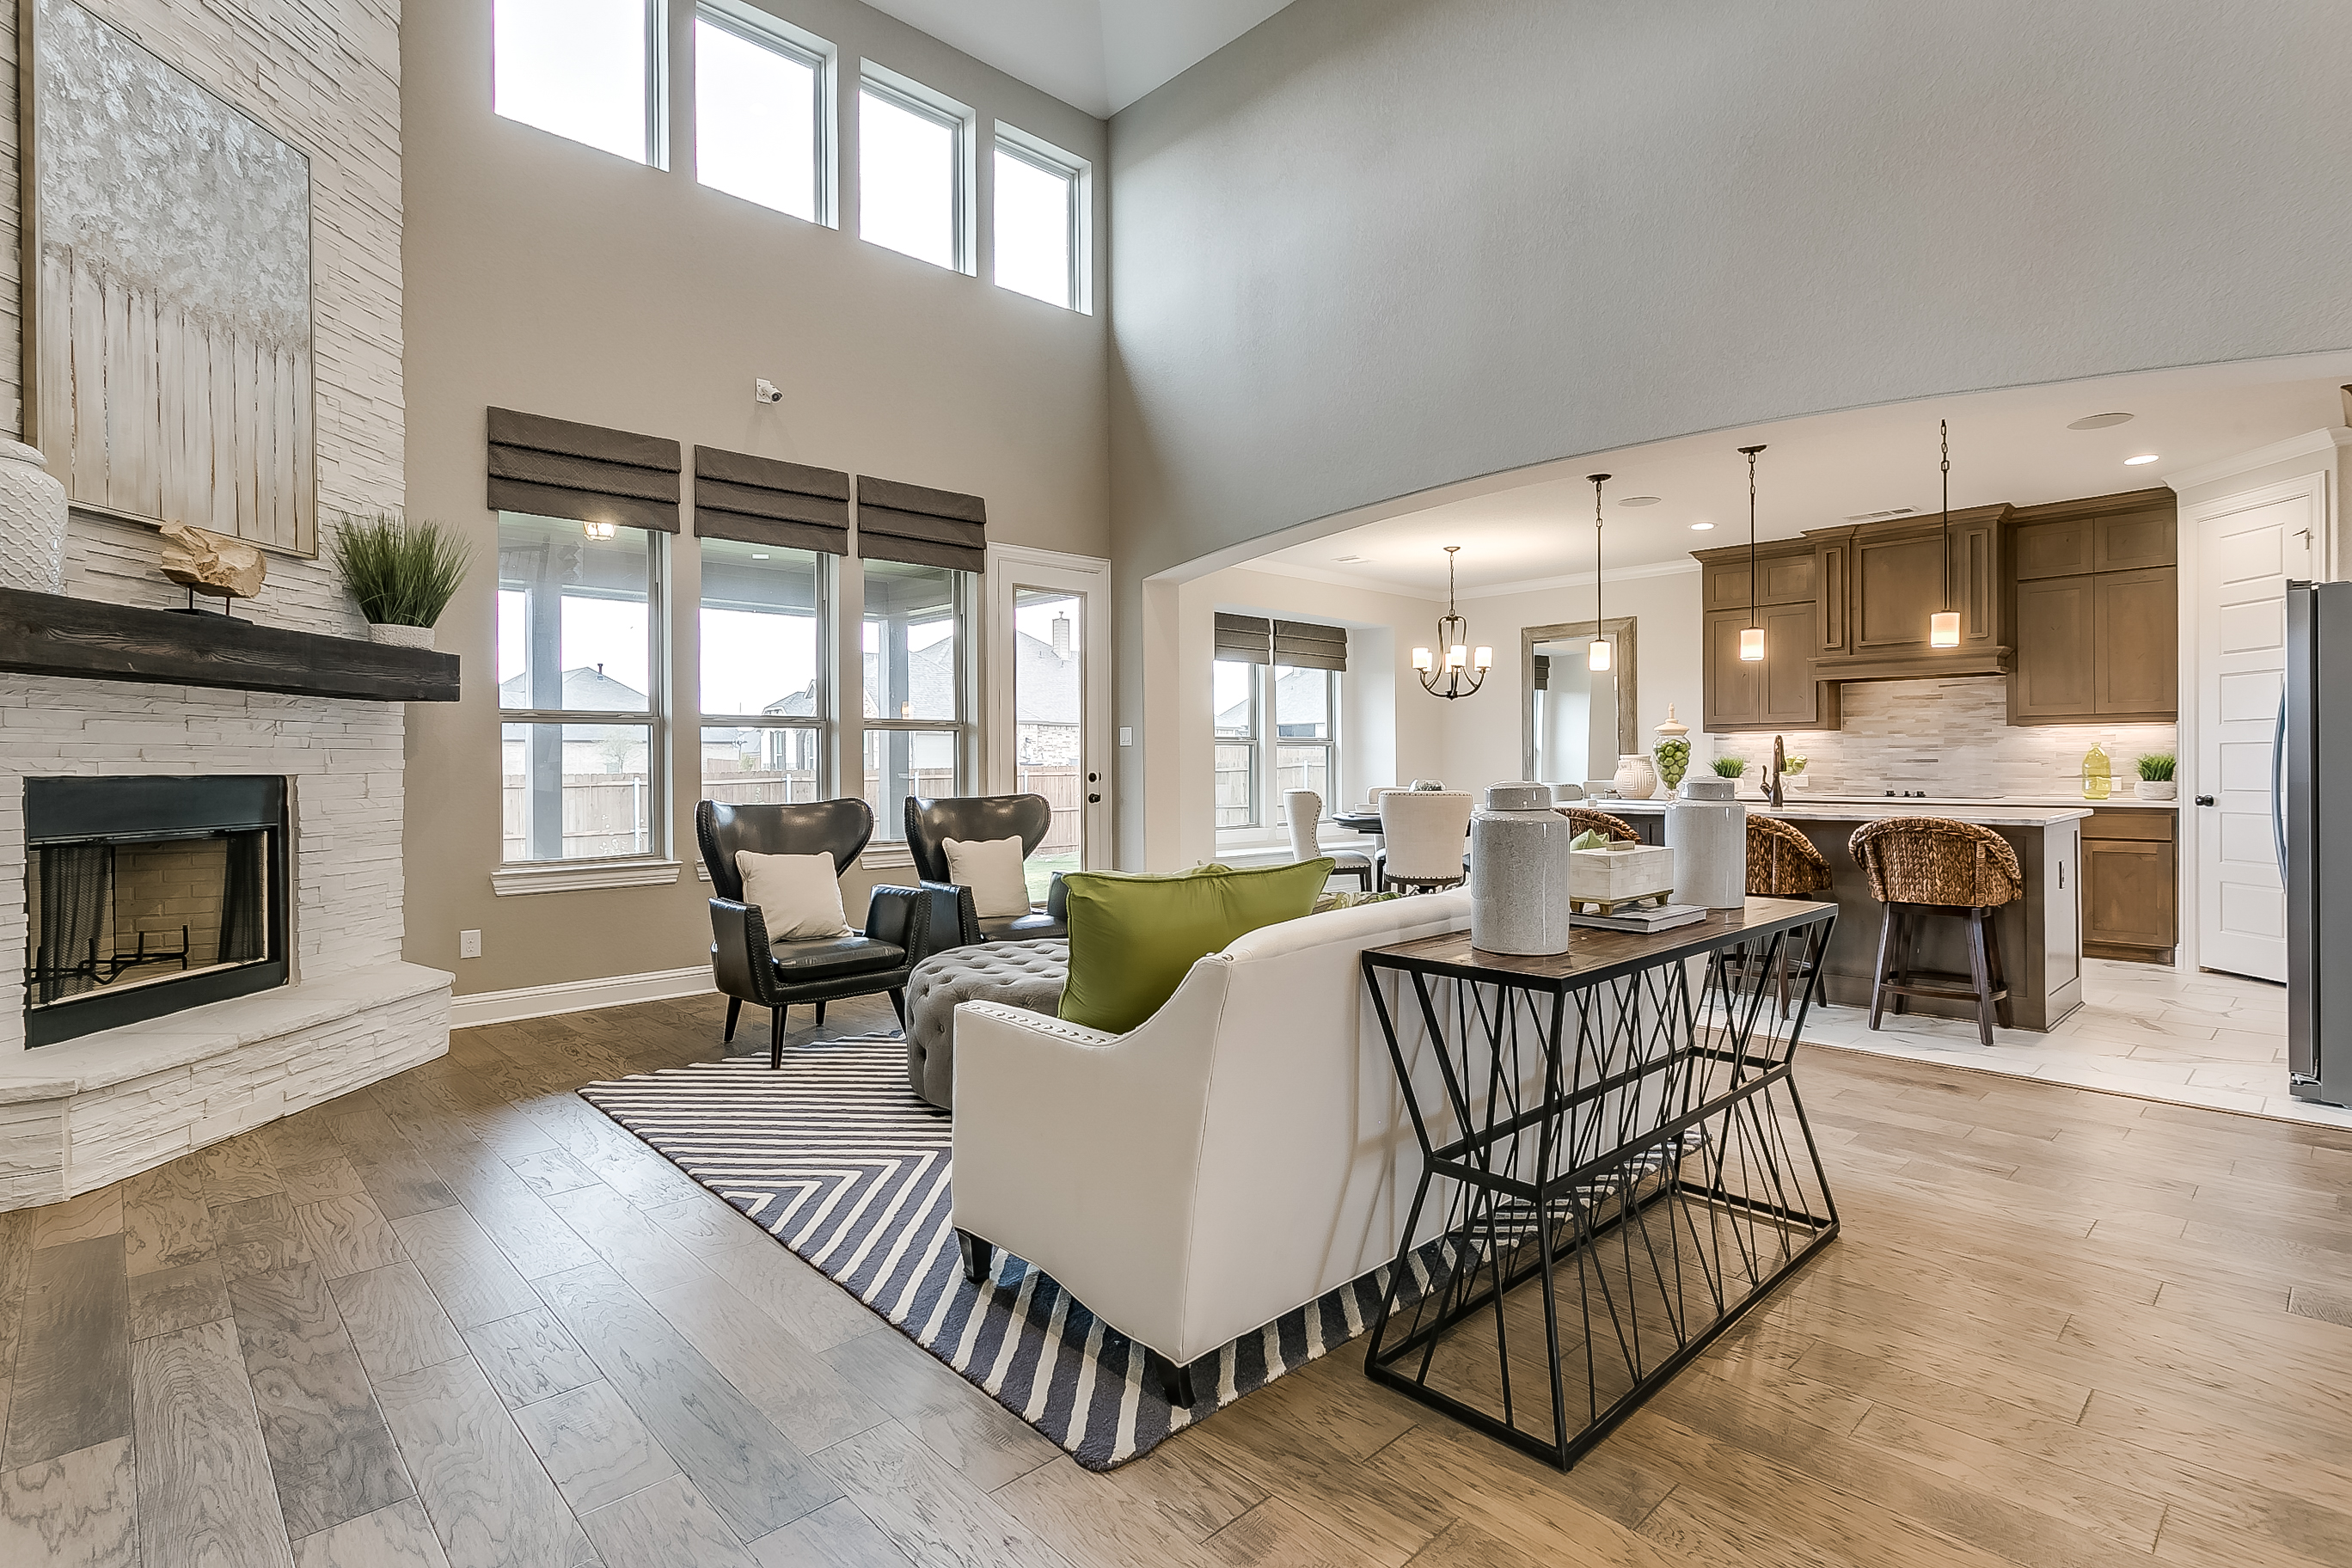 Estates at North Grove, Waxahachie, new homes for sale, waxahachie home builder, ellis county, model home, 3d gallery, 3d home tour, model home photos, 2 story living room